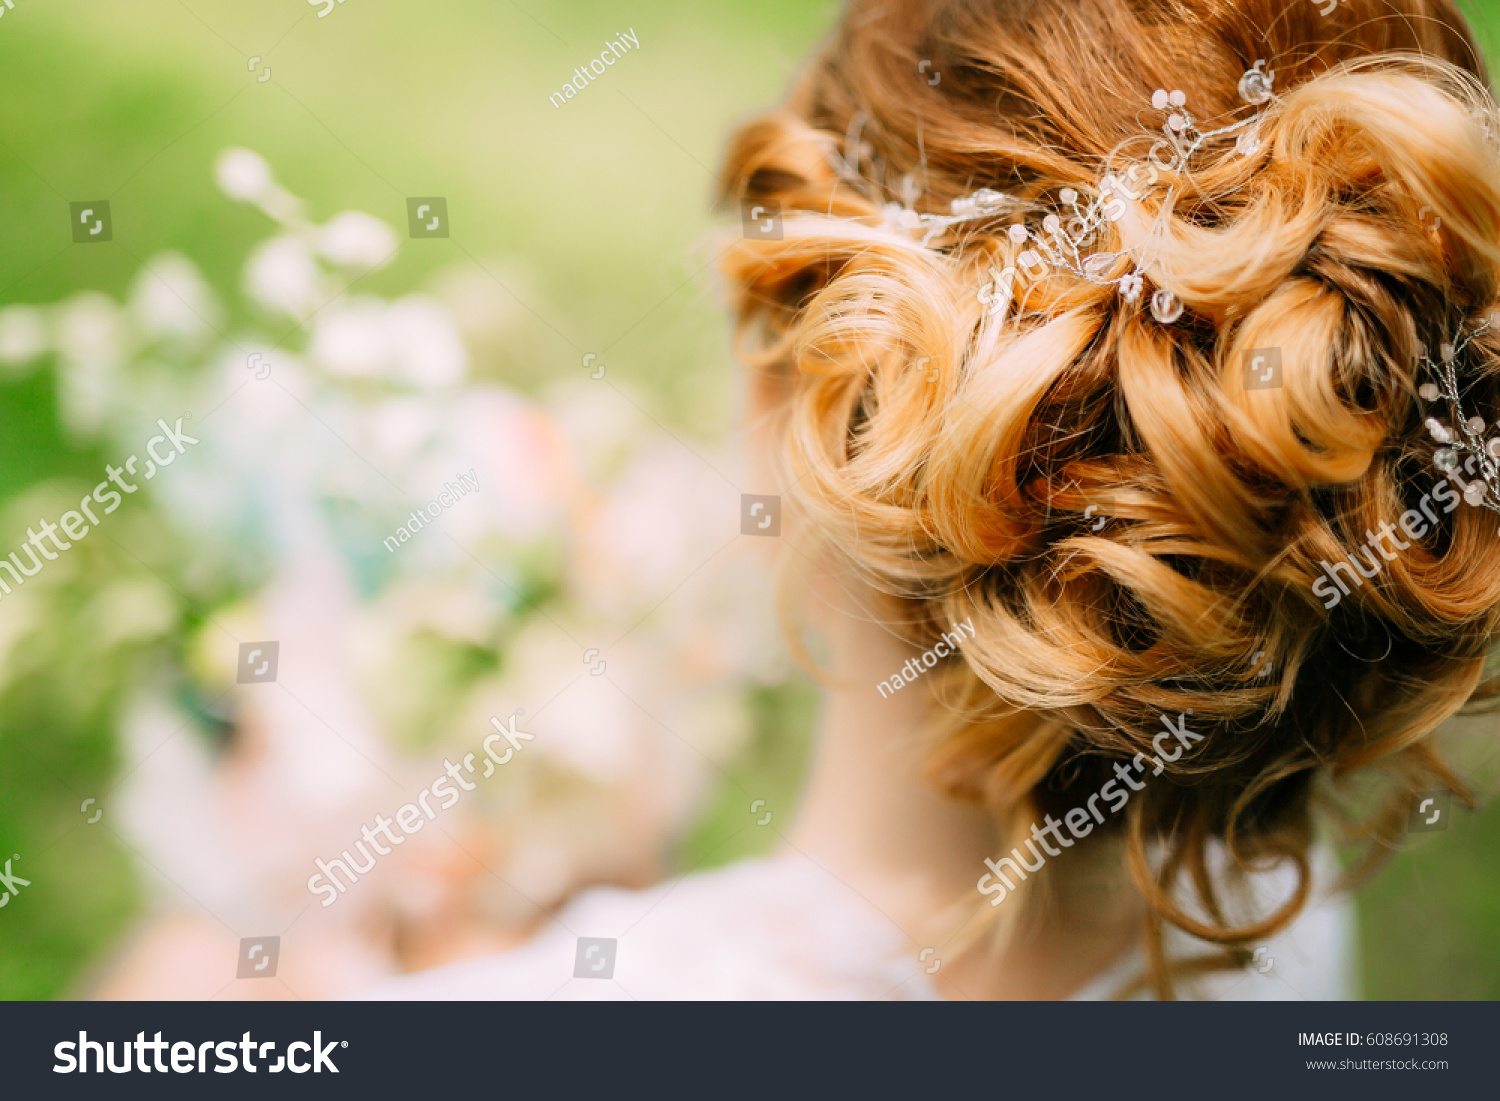 Hairstyle Bride Closeup Hairdresser Finished Making Stock Photo